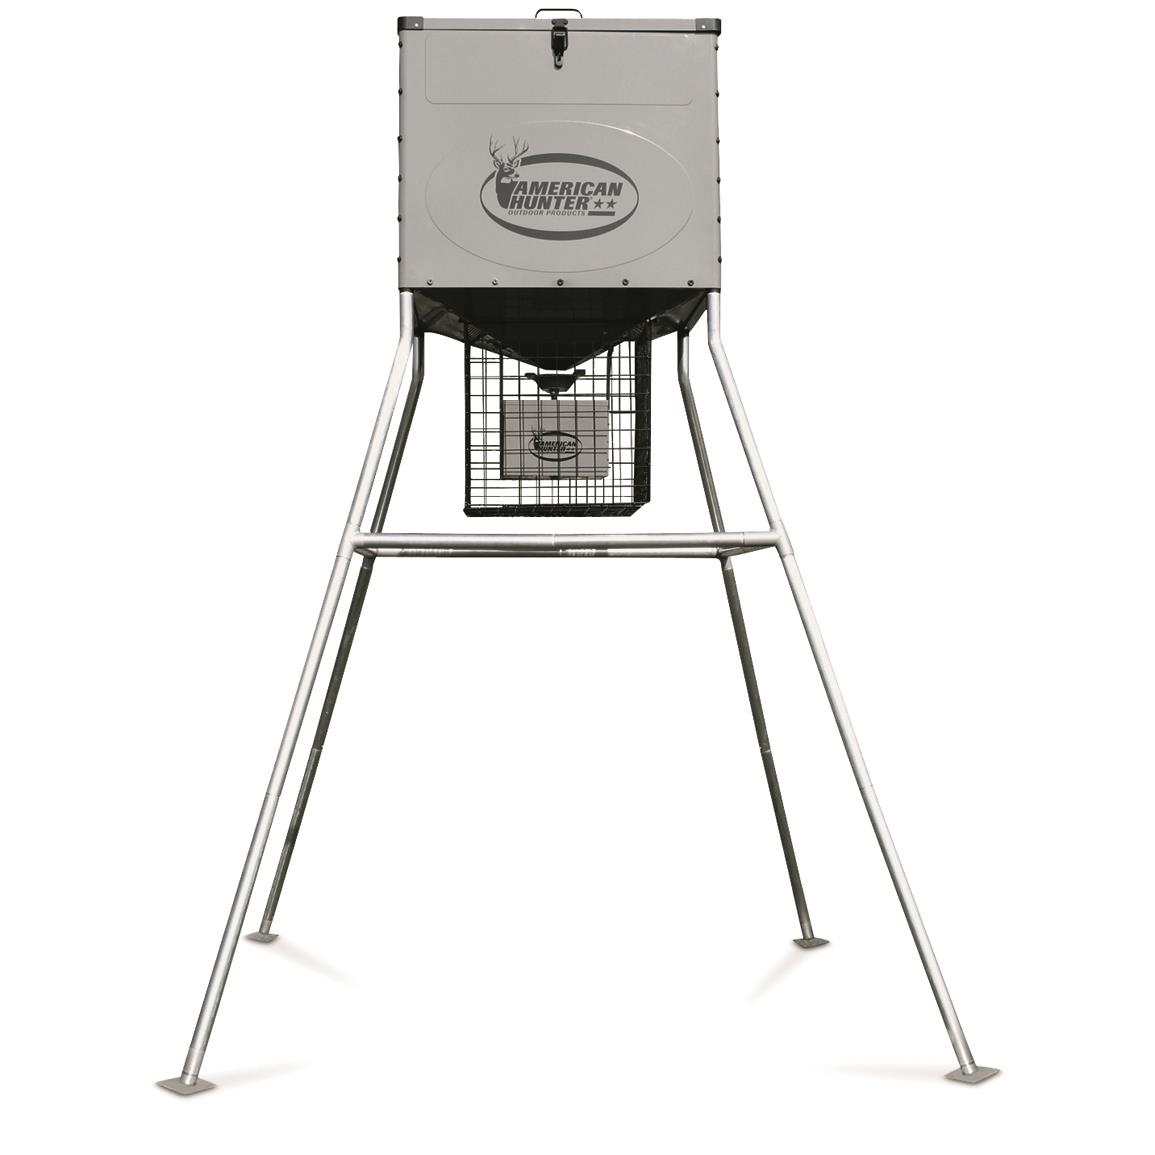 American Hunter KD Feeder With Digital Timer, 440 lb. Capacity